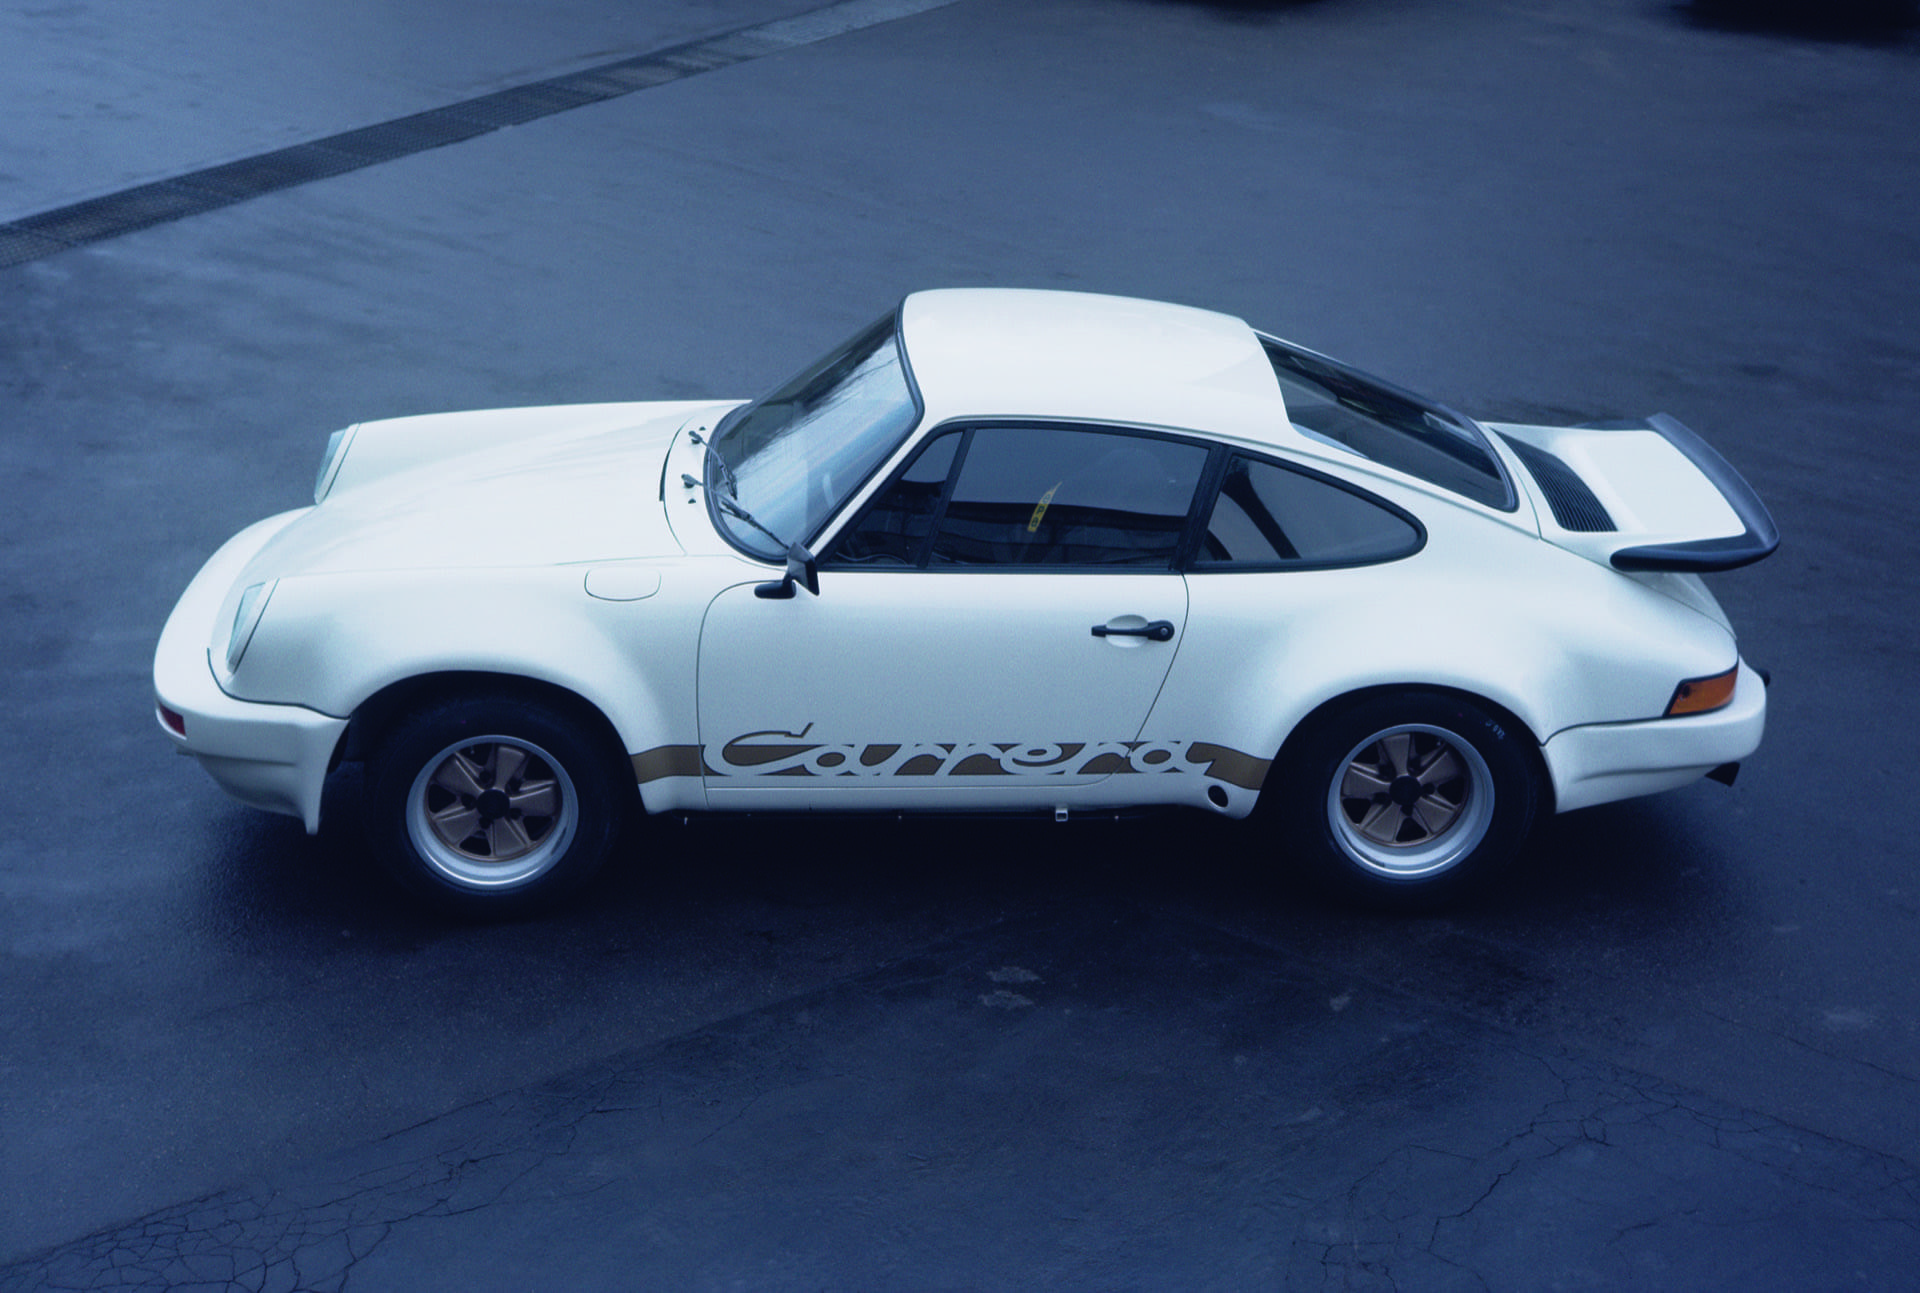 Porsche 911 G Carrera Rs 3 0 Coupe 1974